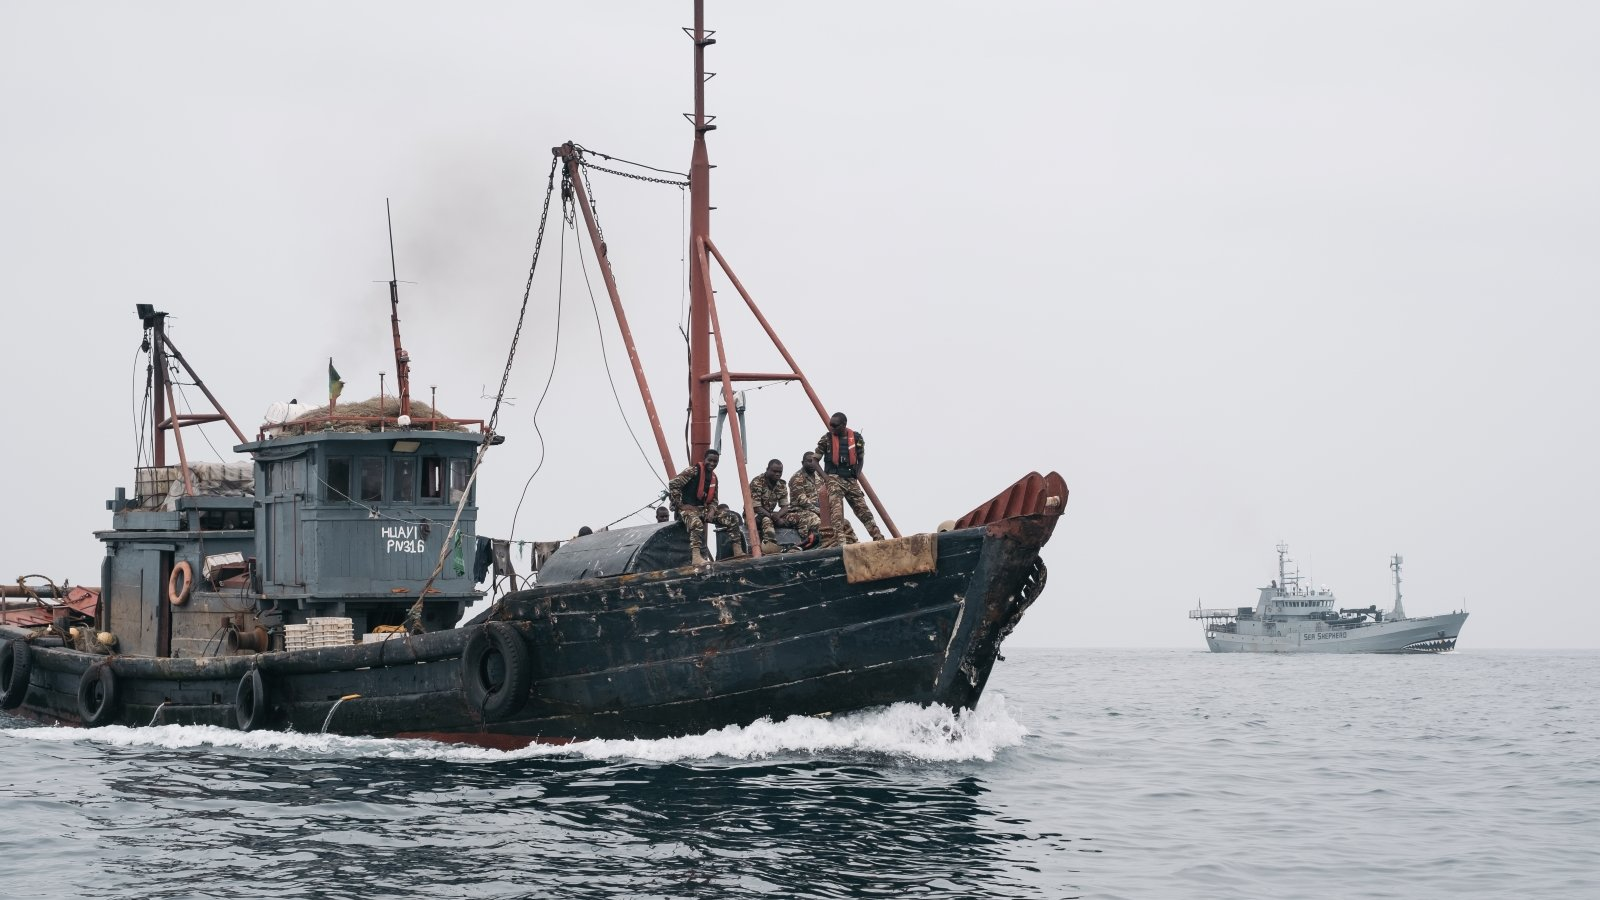 Sea Shepherd Concludes Operation Albacore III Against Illegal Fishing in Central West Africa